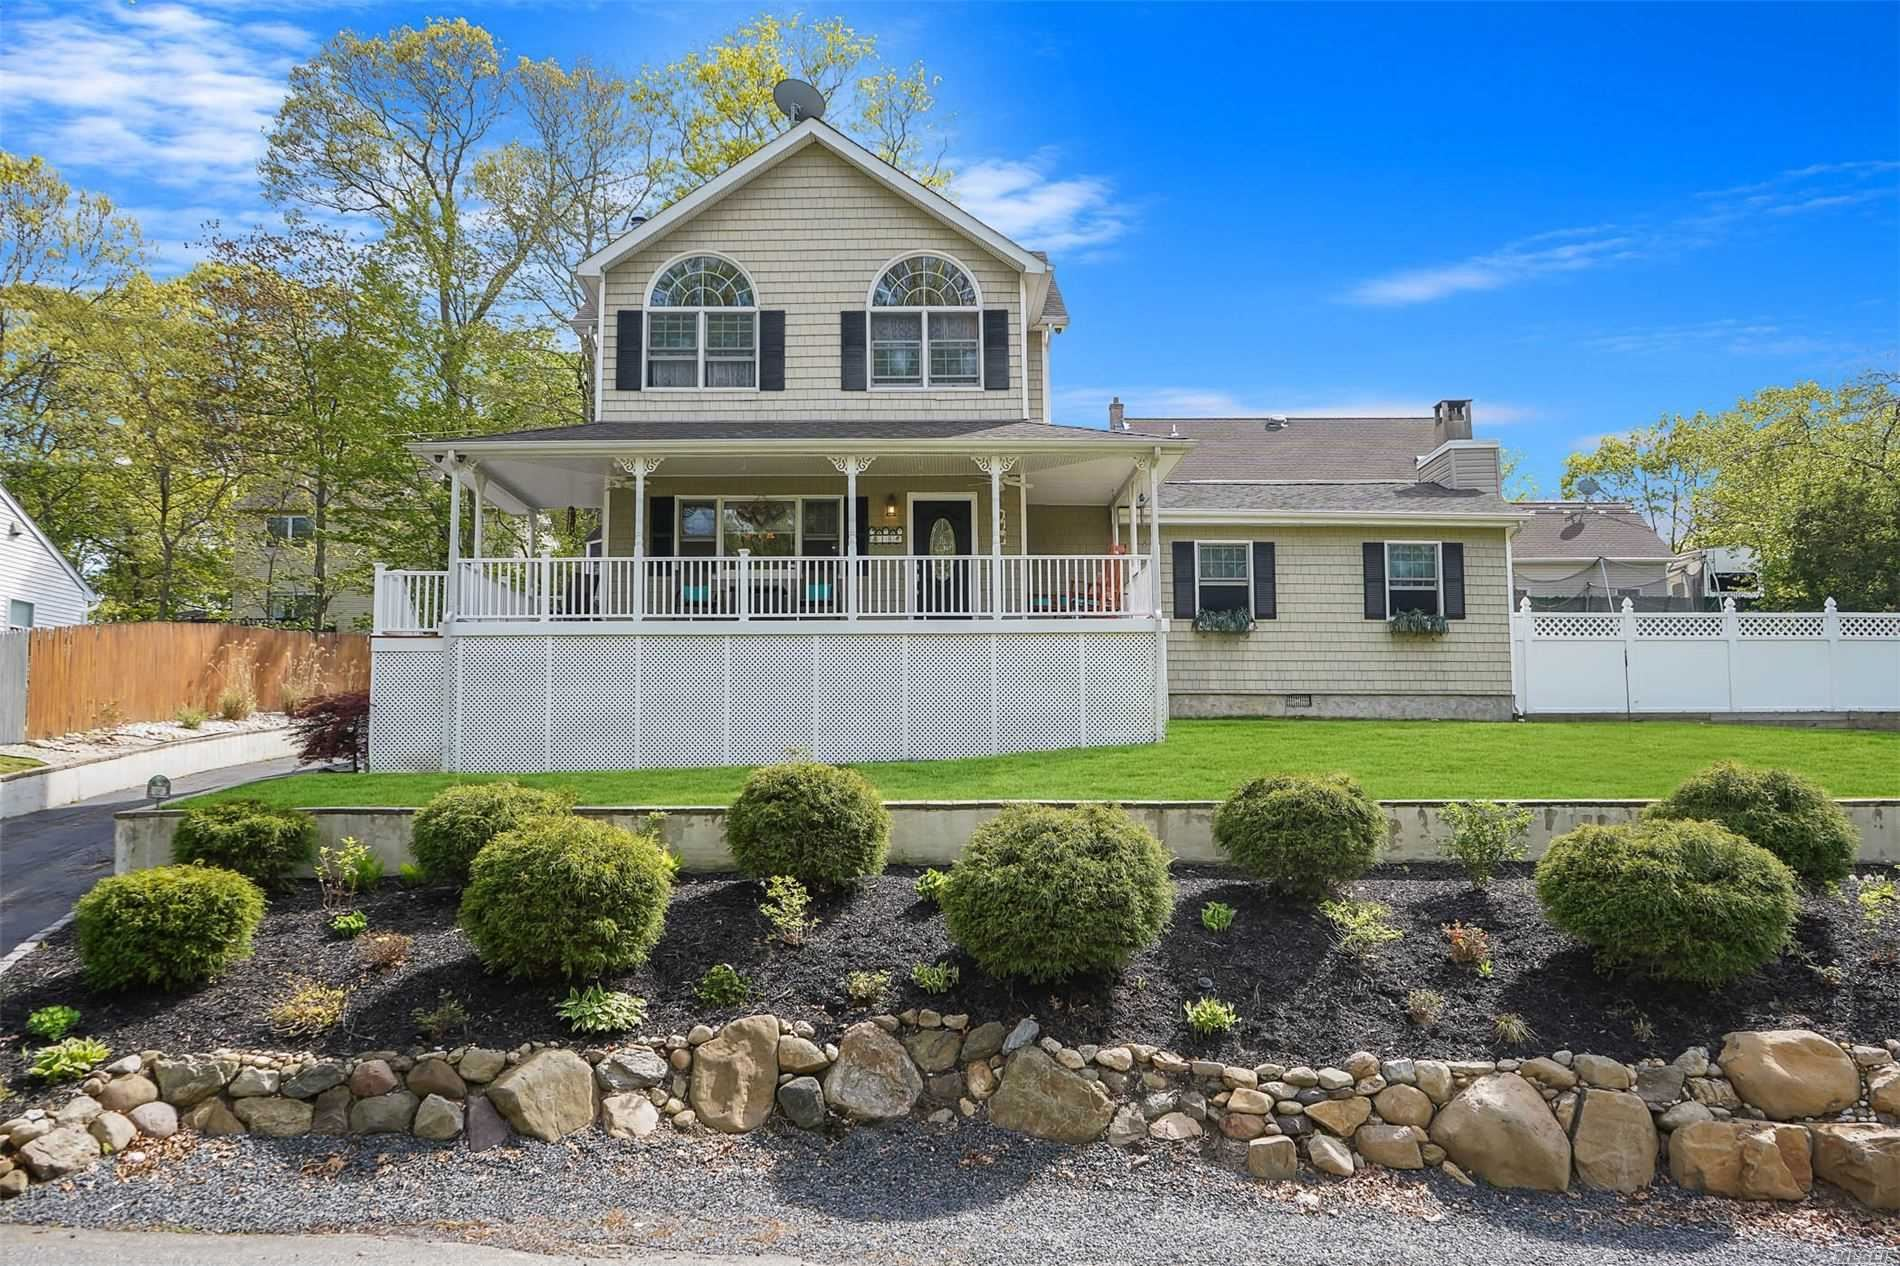 18 Flowerfield Rd, Sound Beach, NY 11789 - MLS#: 3216498